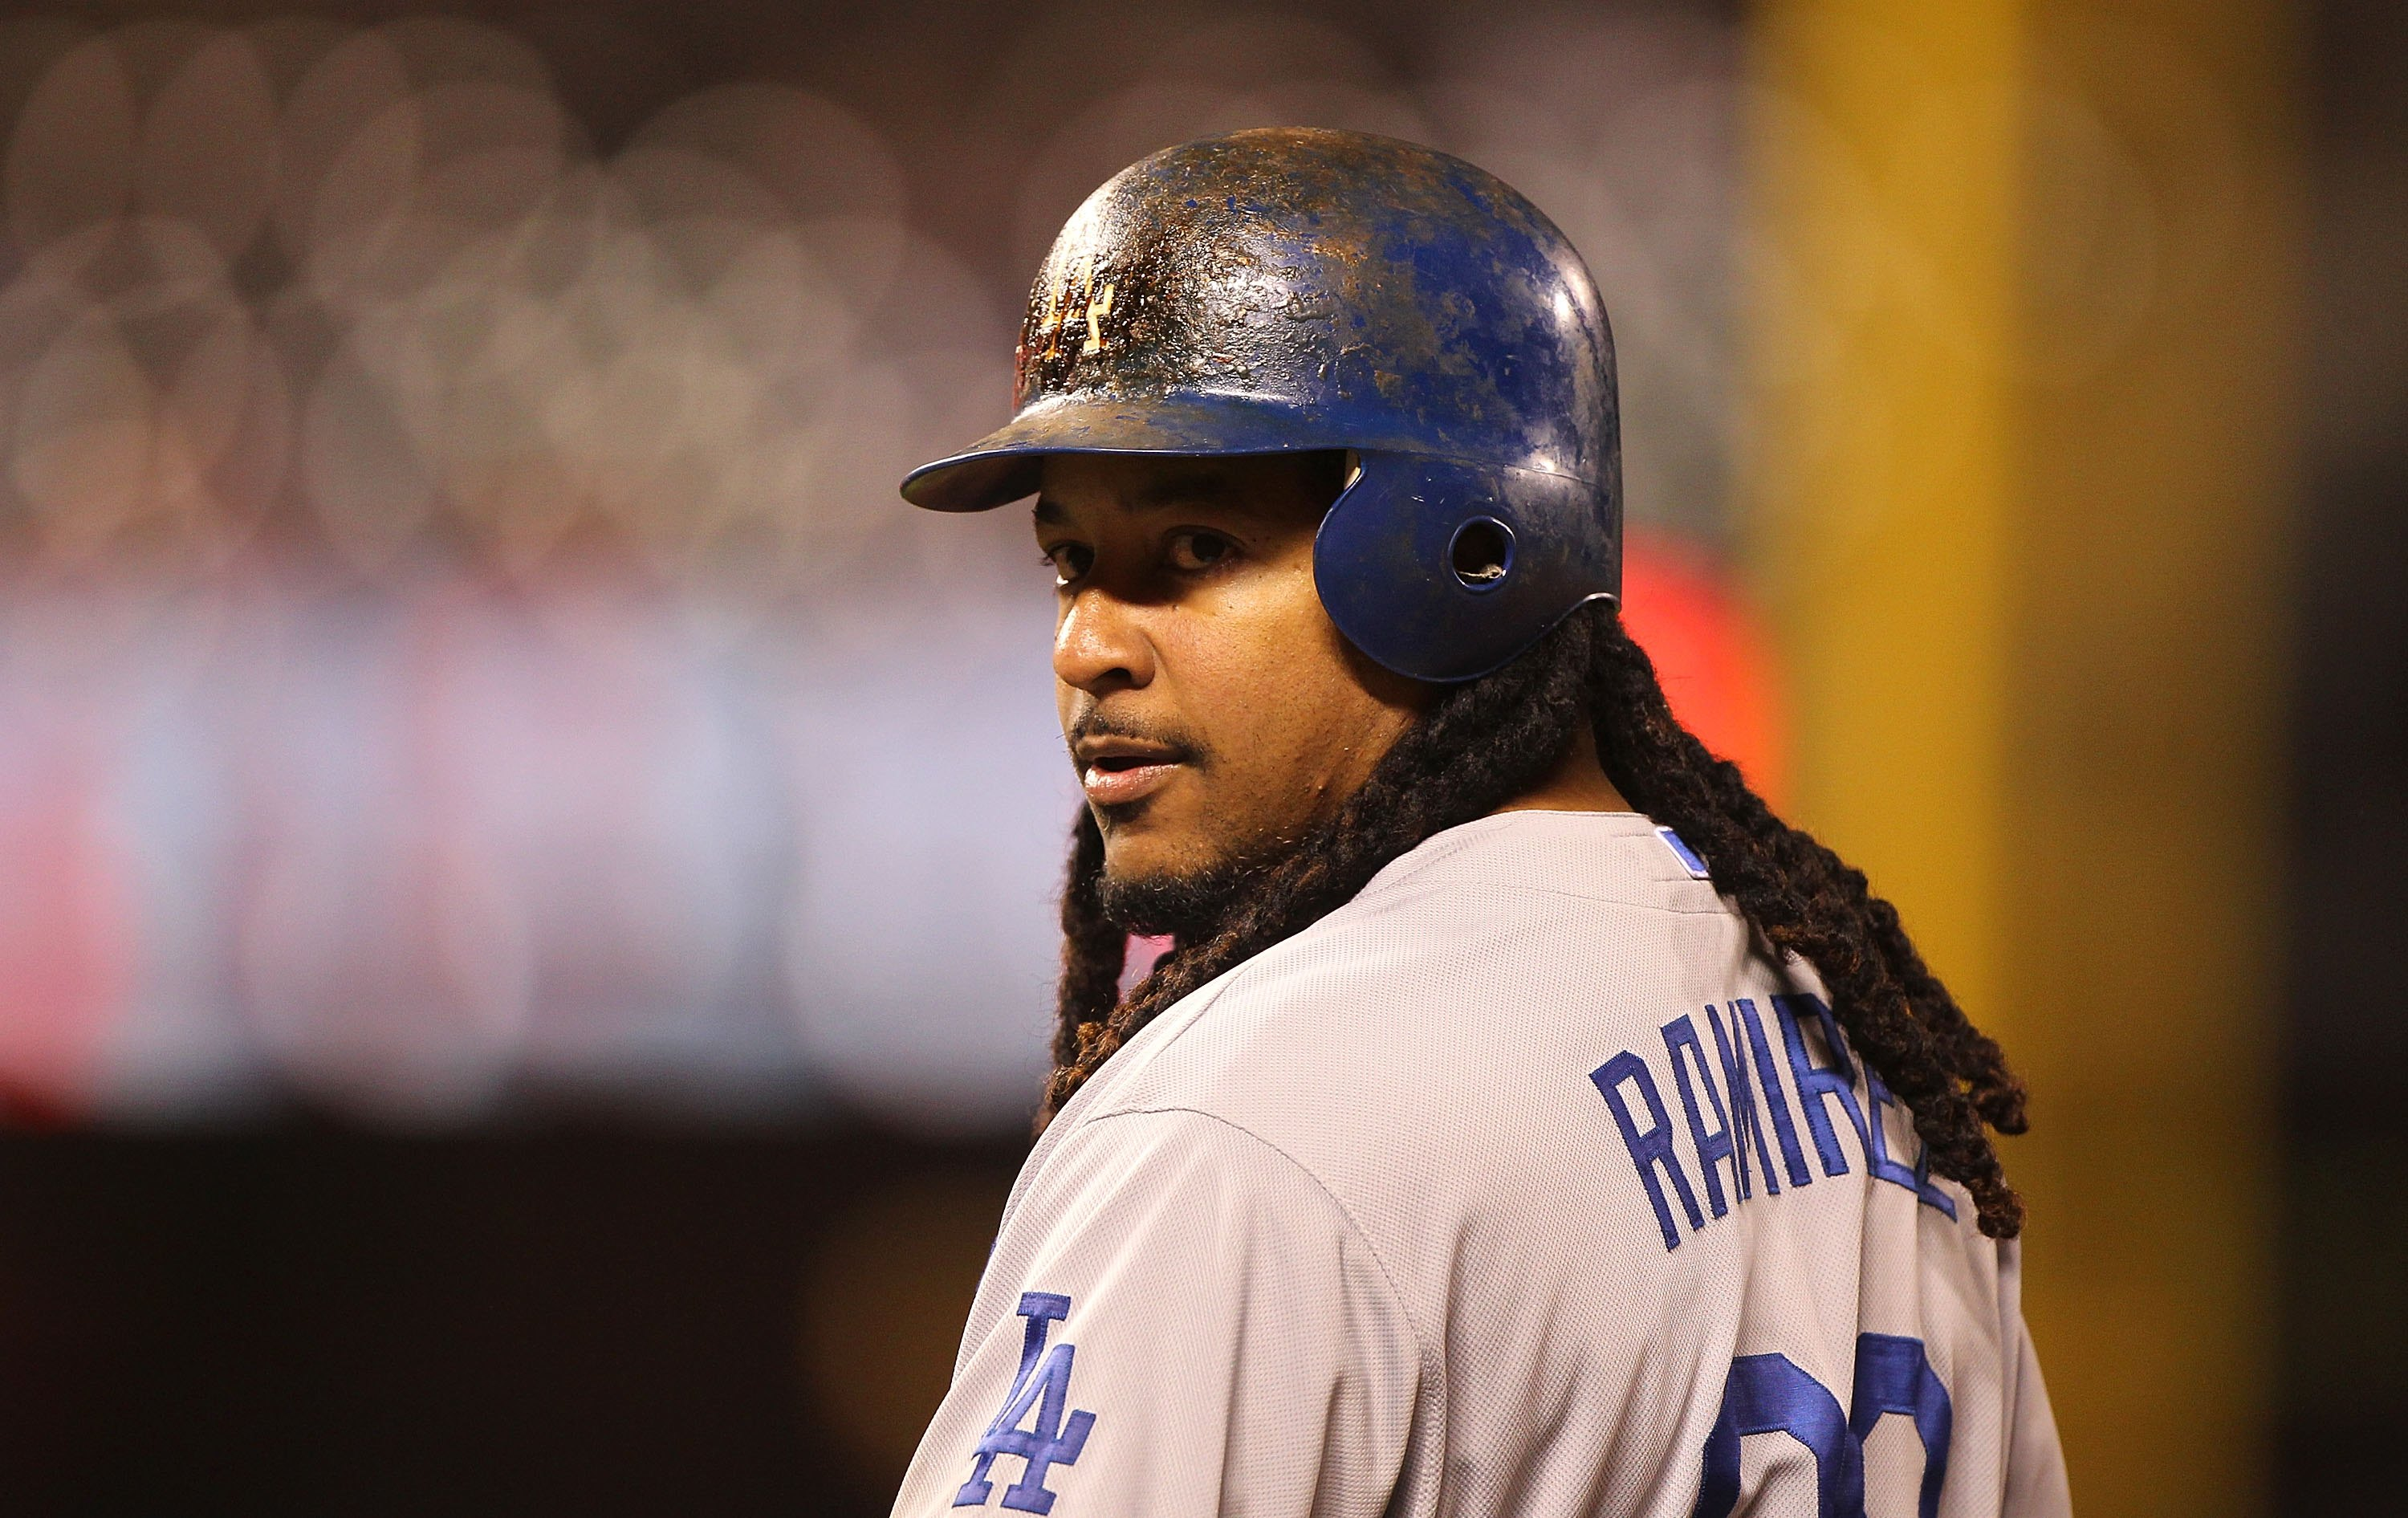 SAN FRANCISCO - JUNE 28:  Manny Ramirez #99 of the Los Angeles Dodgers in action against the San Francisco Giants during an MLB game at AT&T Park on June 28, 2010 in San Francisco, California.  (Photo by Jed Jacobsohn/Getty Images)